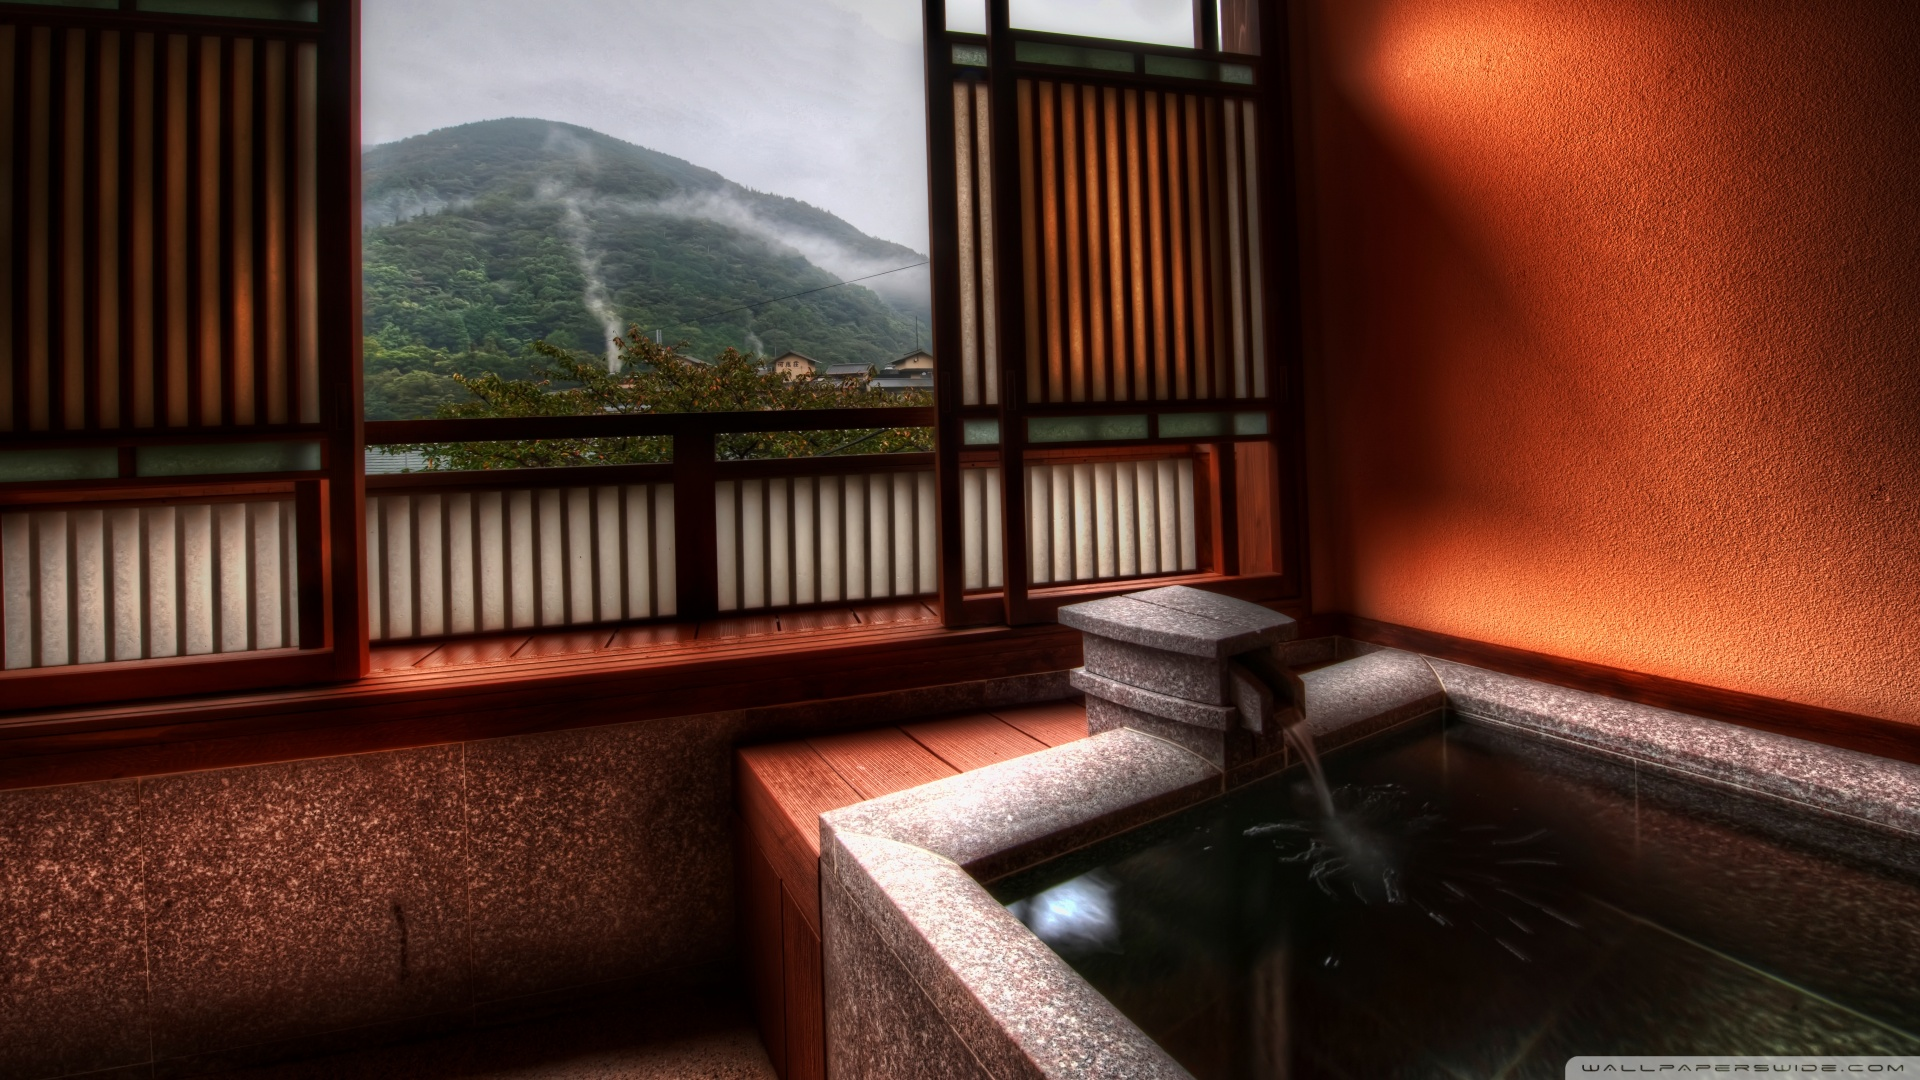 Japanese Bathroom Wallpapers   High Definition Wallpapers Wallpaper